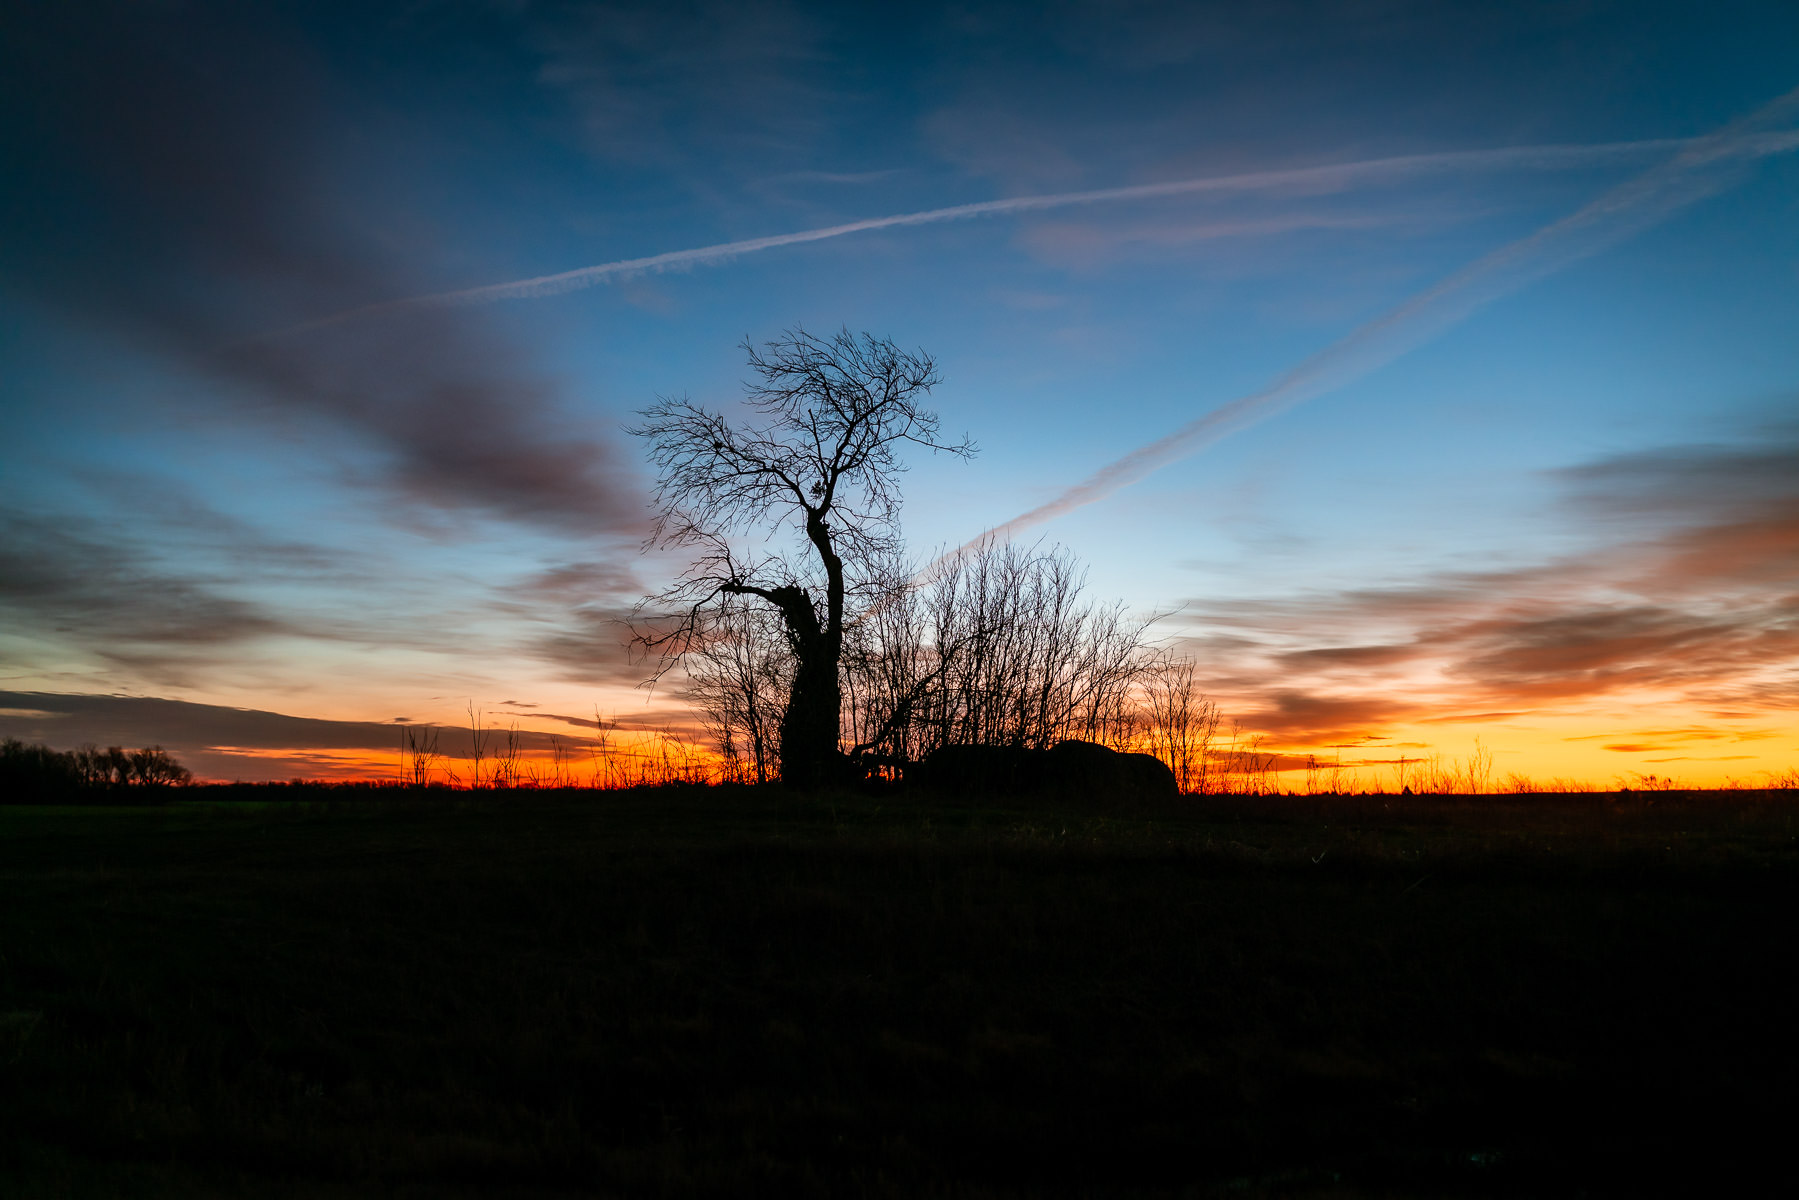 The sun rises on a tree and nearby bales of hay near Dorchester, Texas.